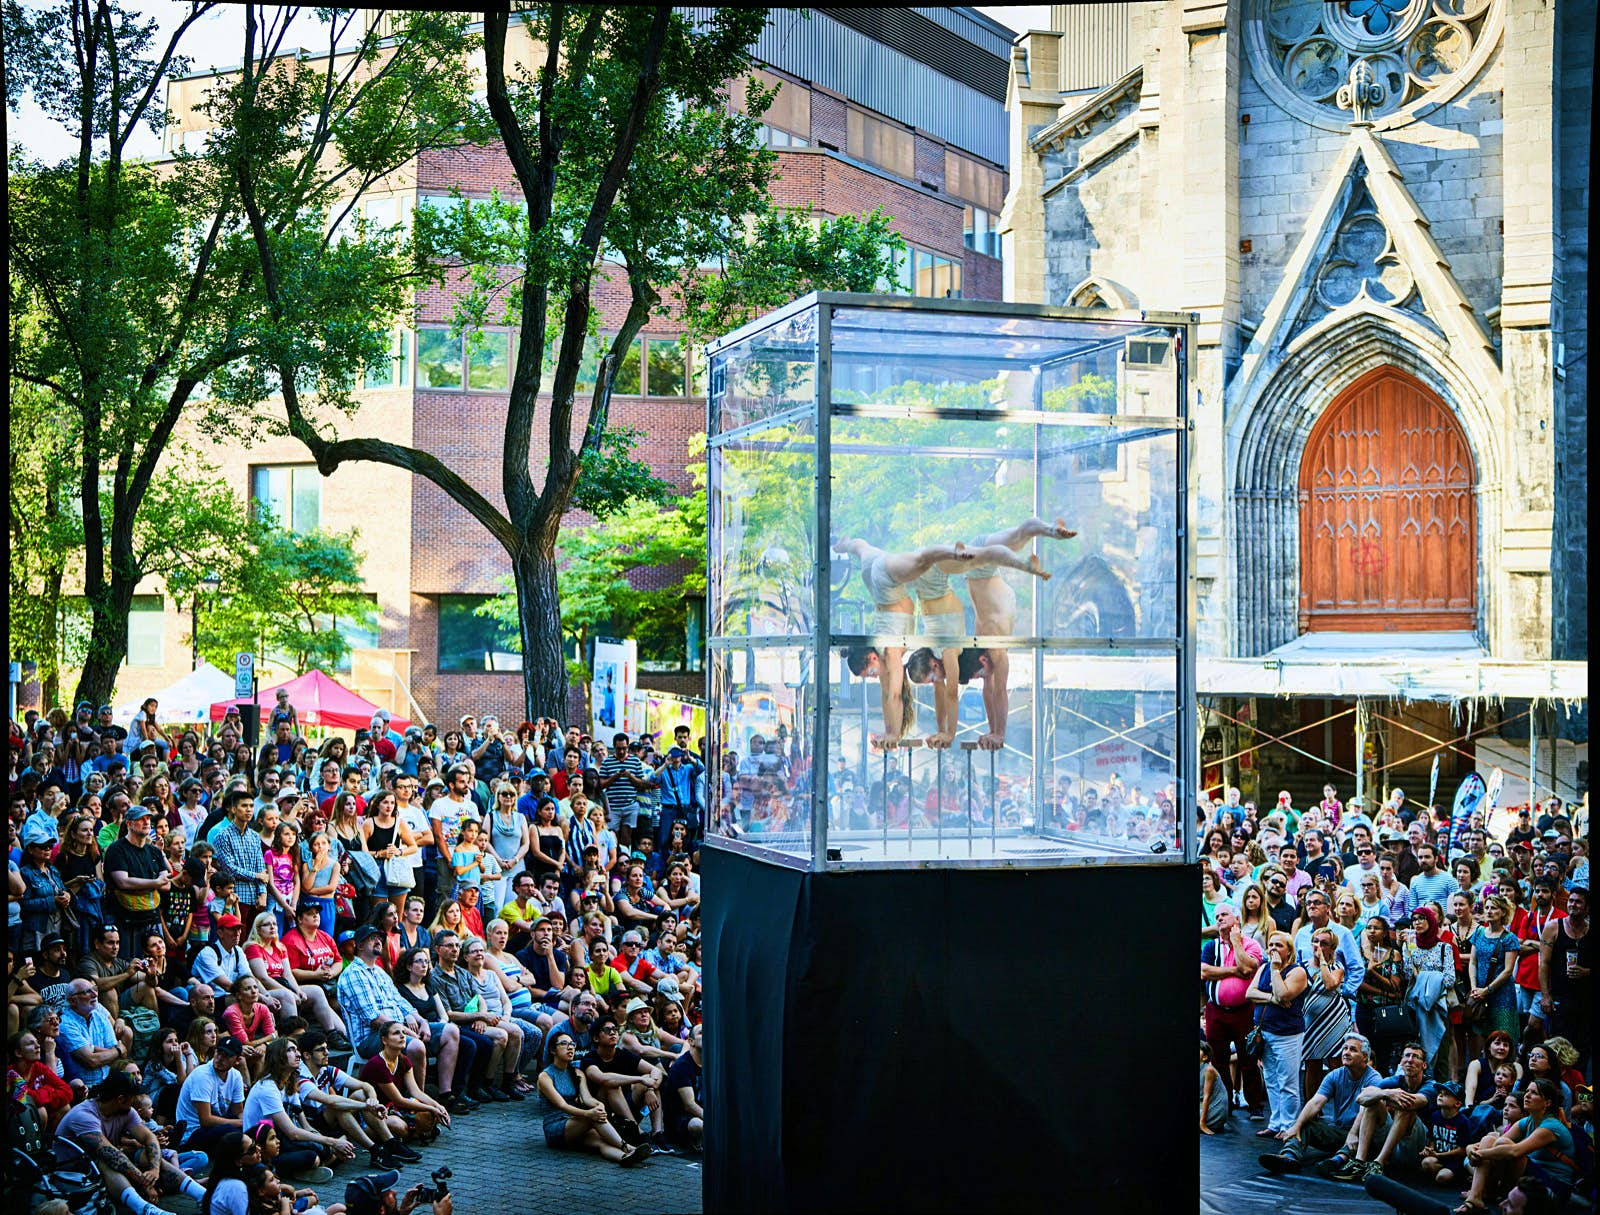 Three circus acrobat/contortionists balance on their hands on small stands inside a clear box on a pedestal, surrounded by spectators in Montreal